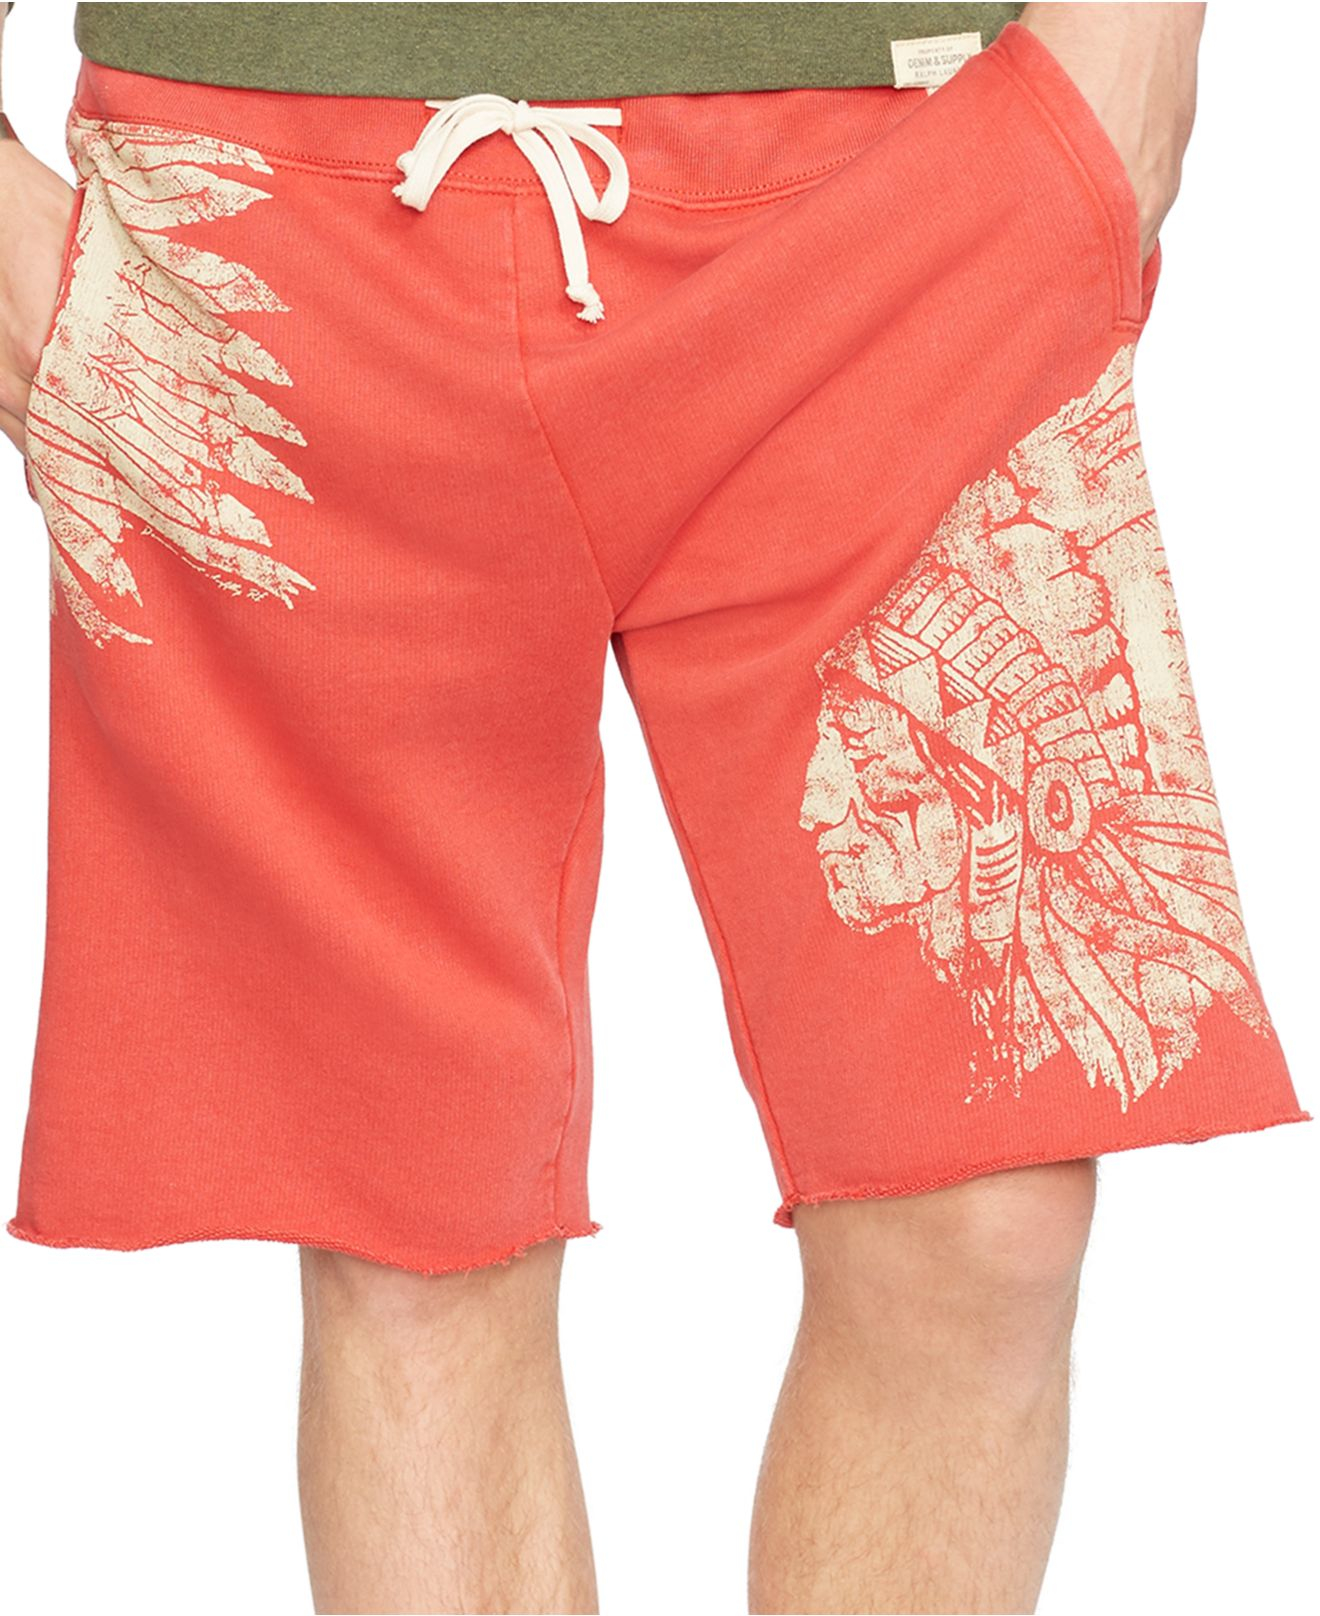 e92189978b5 Denim & Supply Ralph Lauren French Terry Graphic Shorts in Red for ...